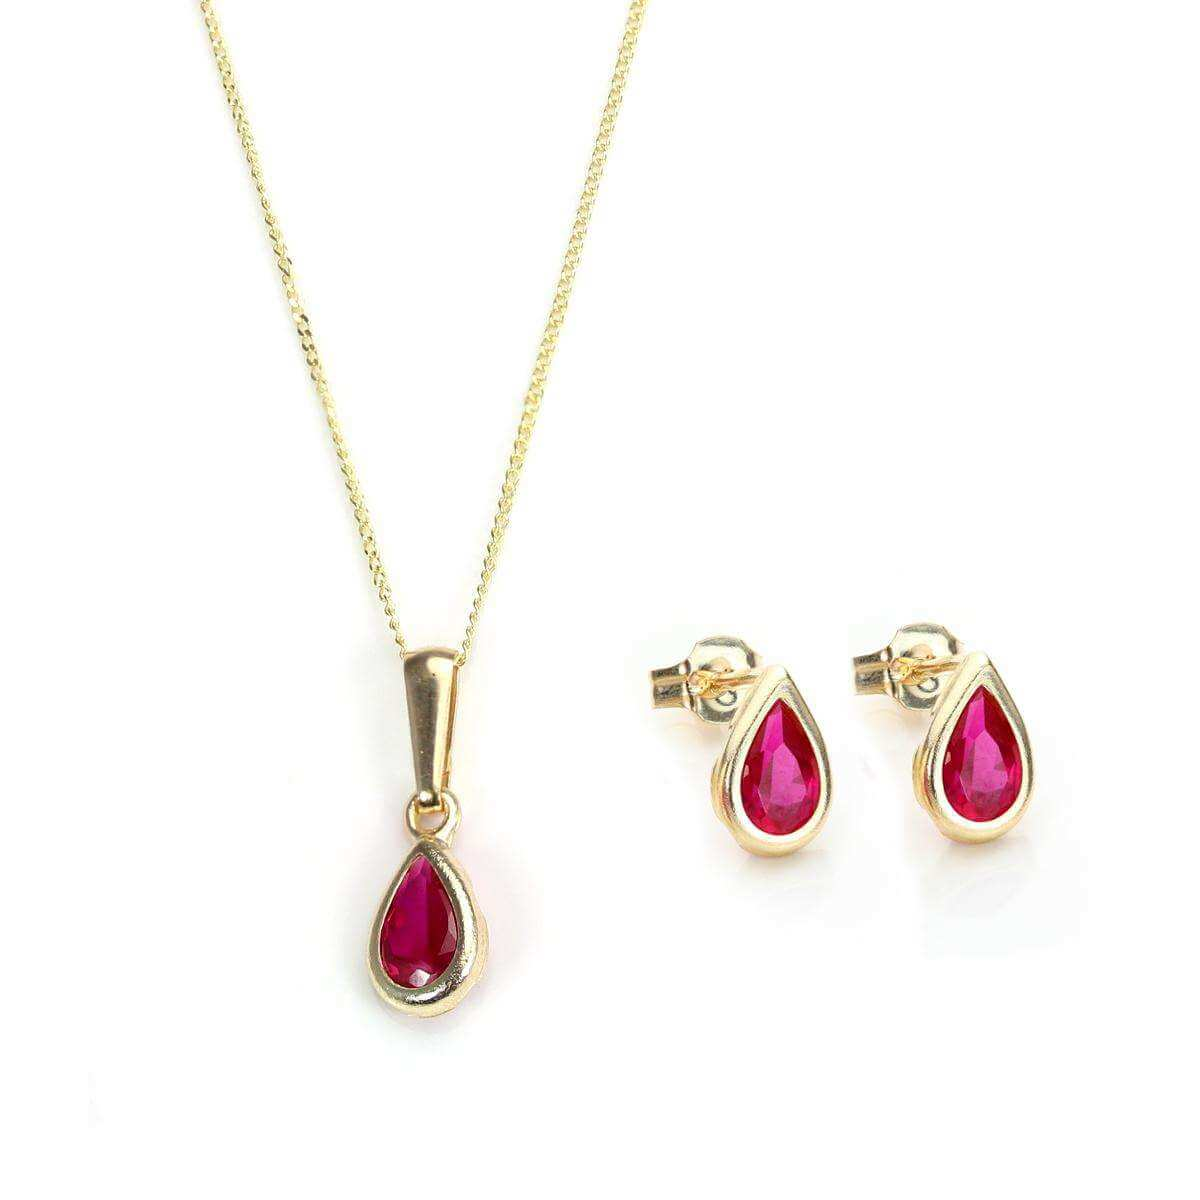 9ct Gold & July Birthstone Pendant & Stud Earrings Set